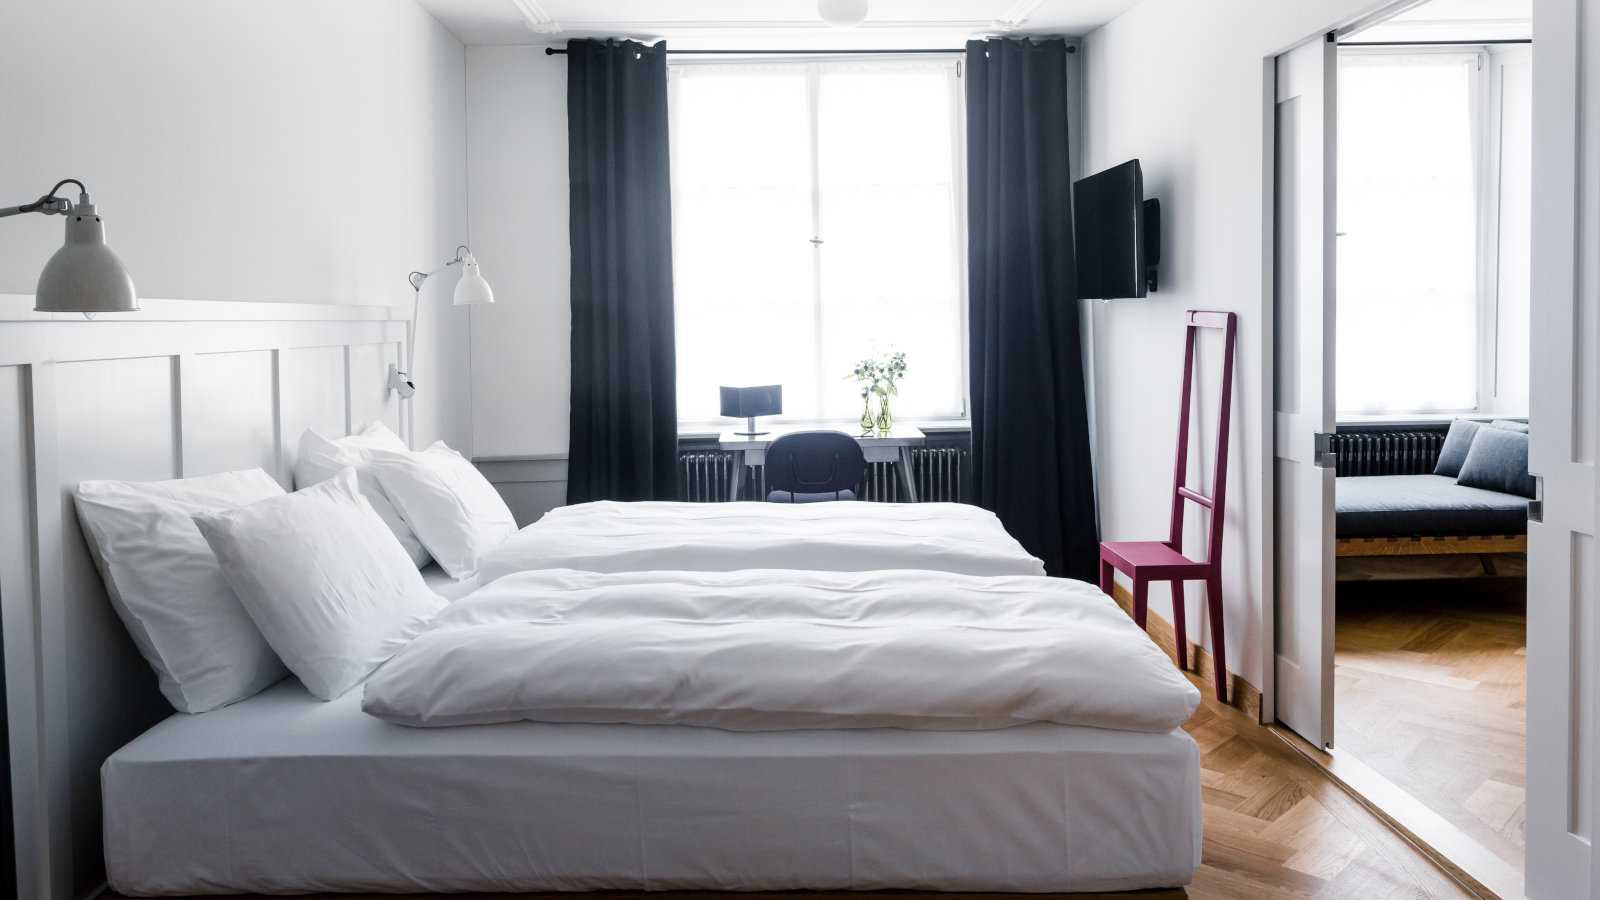 Marktgasse Hotel is one of the best gay friendly and luxurious hotels in Zurich